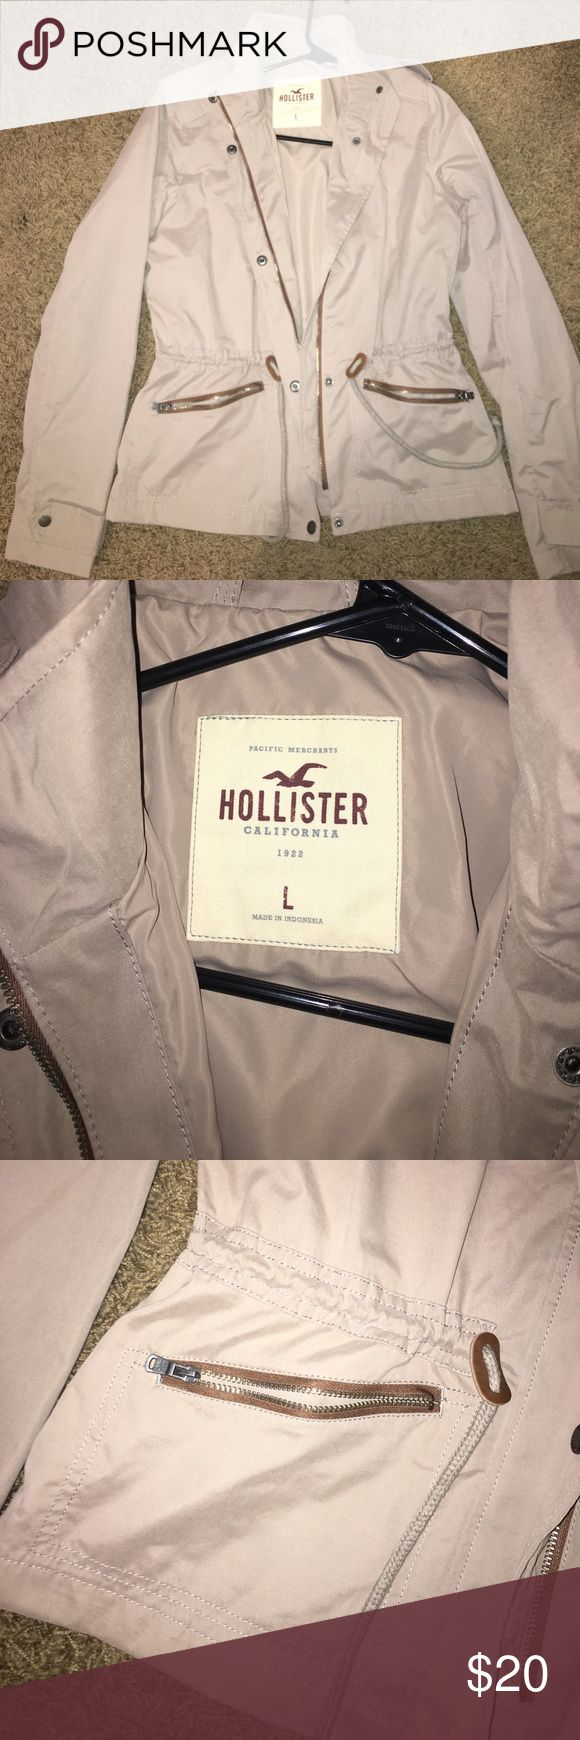 Hollister Coat Brand new condition! Cute color; matches anything! Adjustable waist tightness. Fits a size small (medium) Hollister Jackets & Coats Blazers